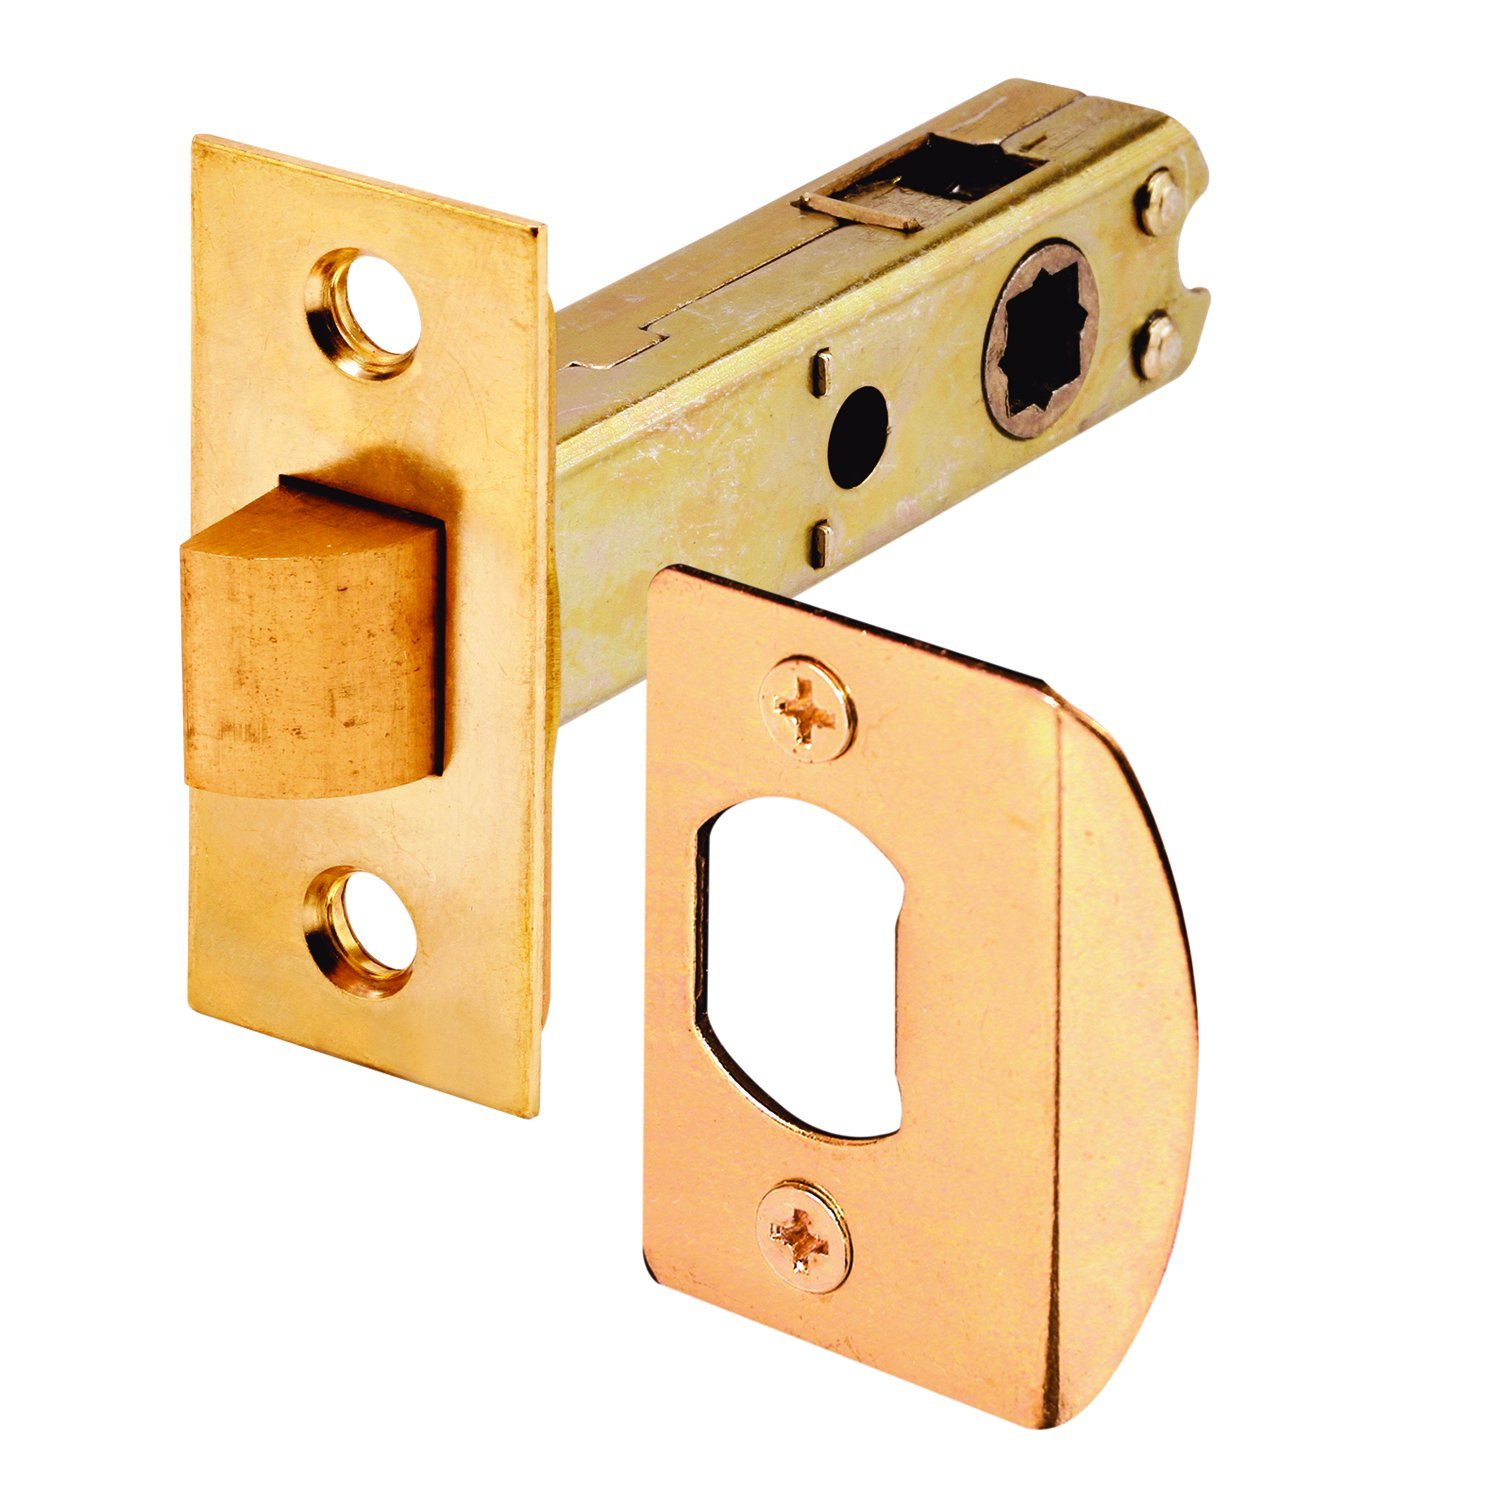 Prime-Line Products E 2440 Passage Door Latch 9/32 in. u0026 5/16 in. Square Drive Steel Chrome Finish - Bi Fold Door Hardware - Amazon.com  sc 1 st  Amazon.com & Prime-Line Products E 2440 Passage Door Latch 9/32 in. u0026 5/16 in ...